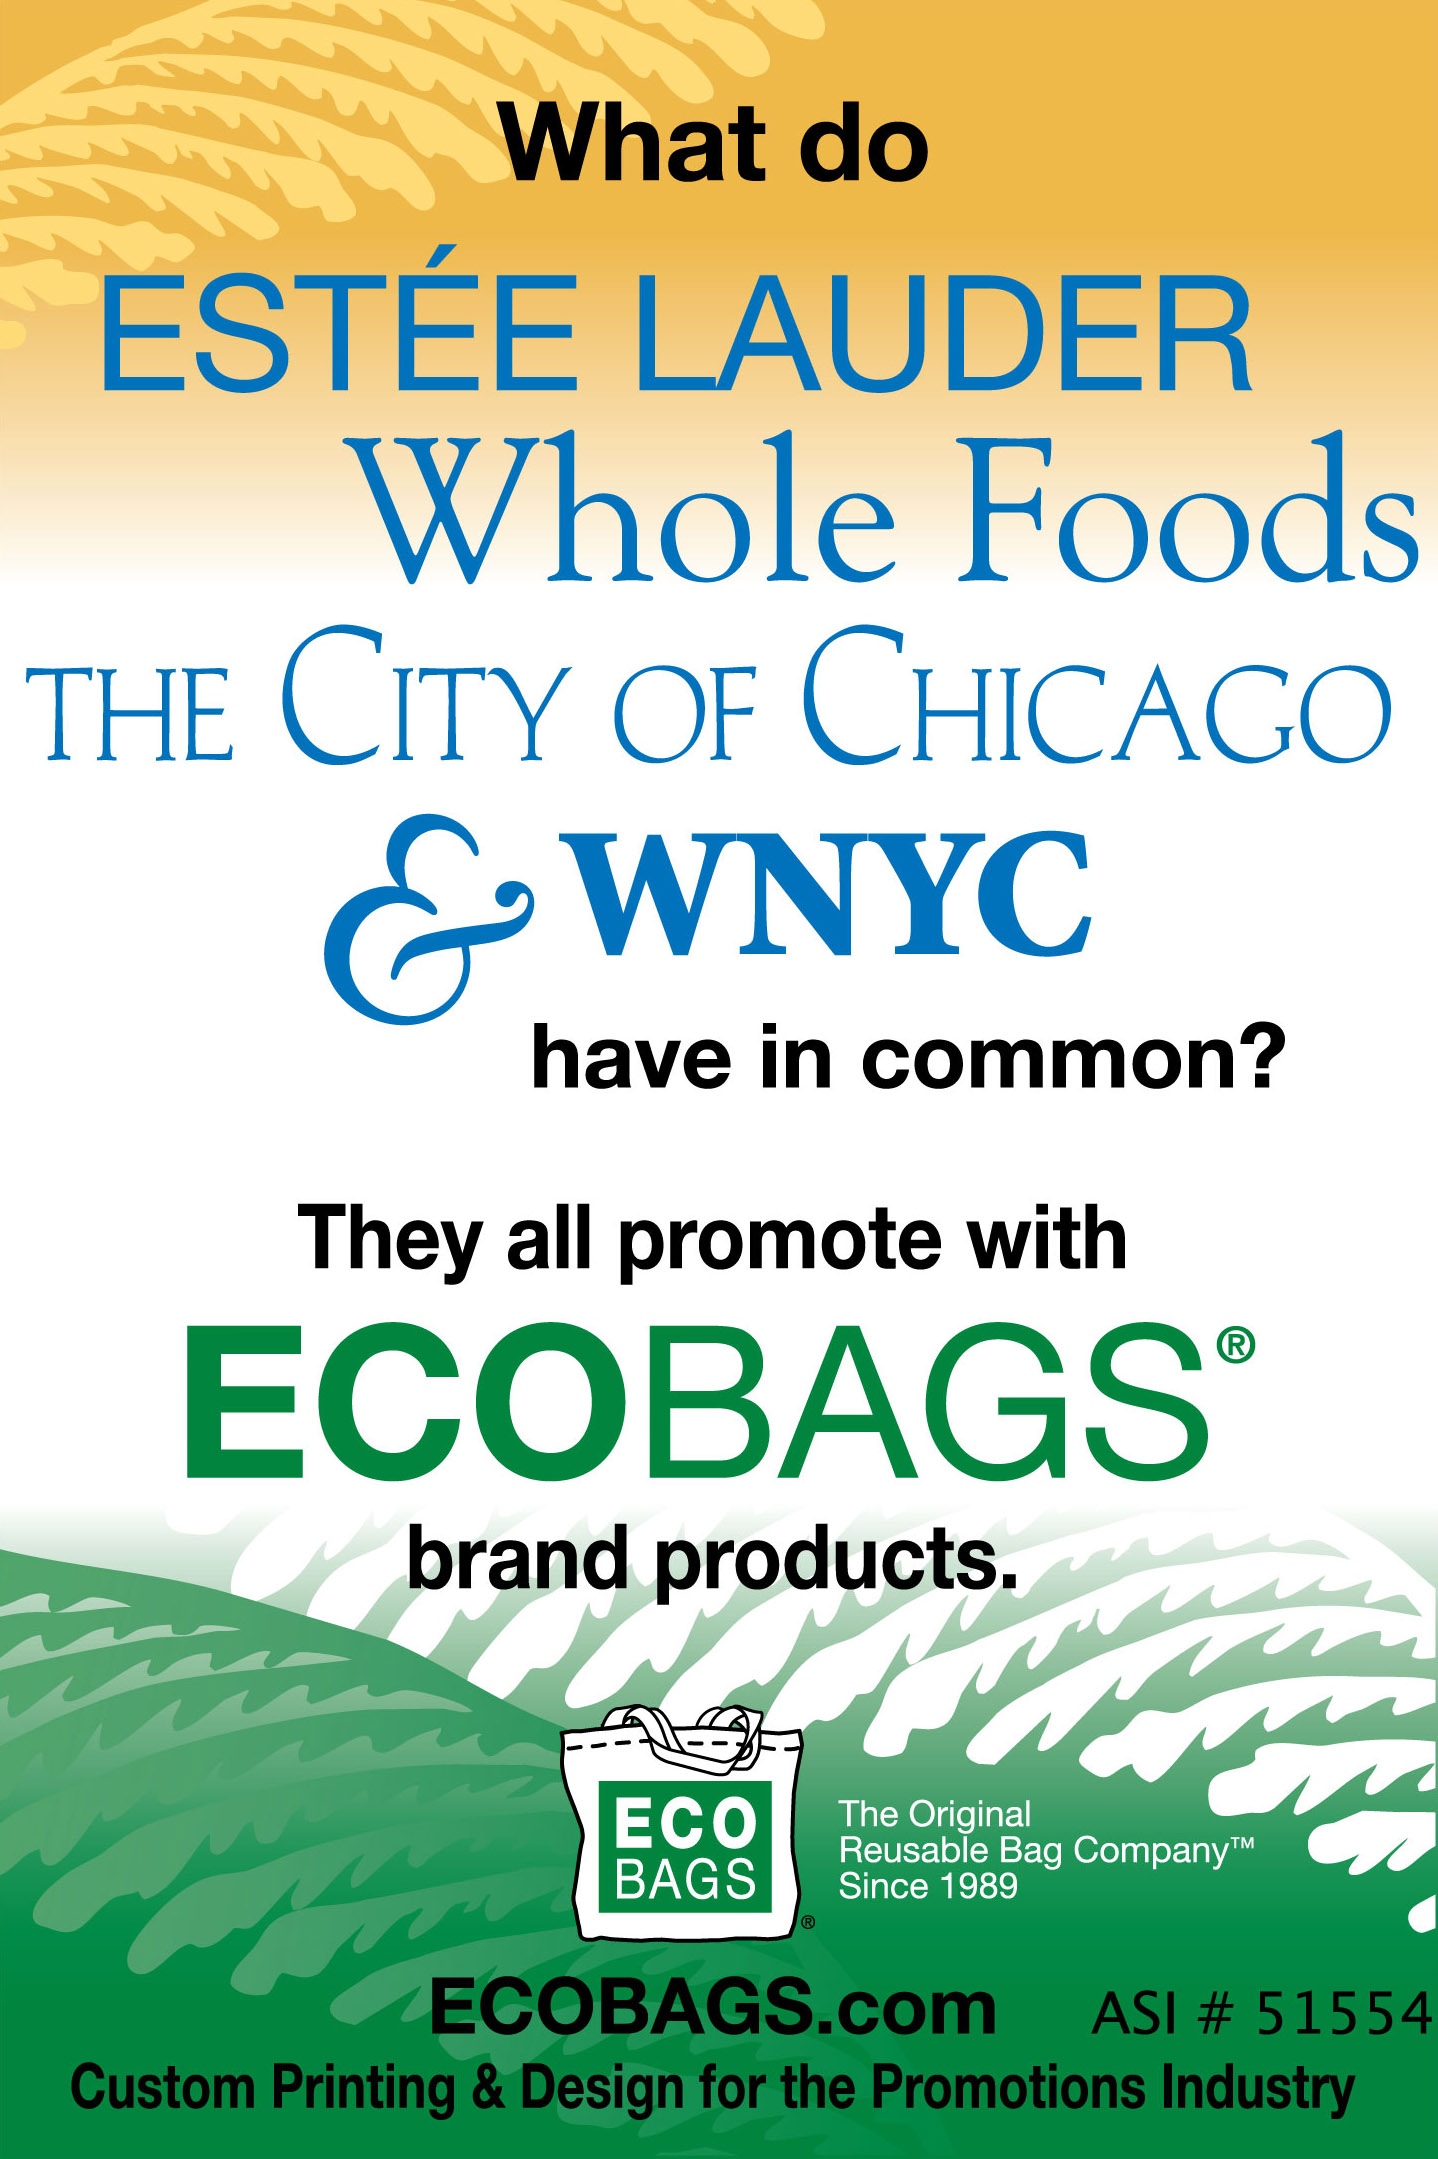 ECOBAGS Estee Lauder, Whole Foods, The City of Chicago, WNYC Promo